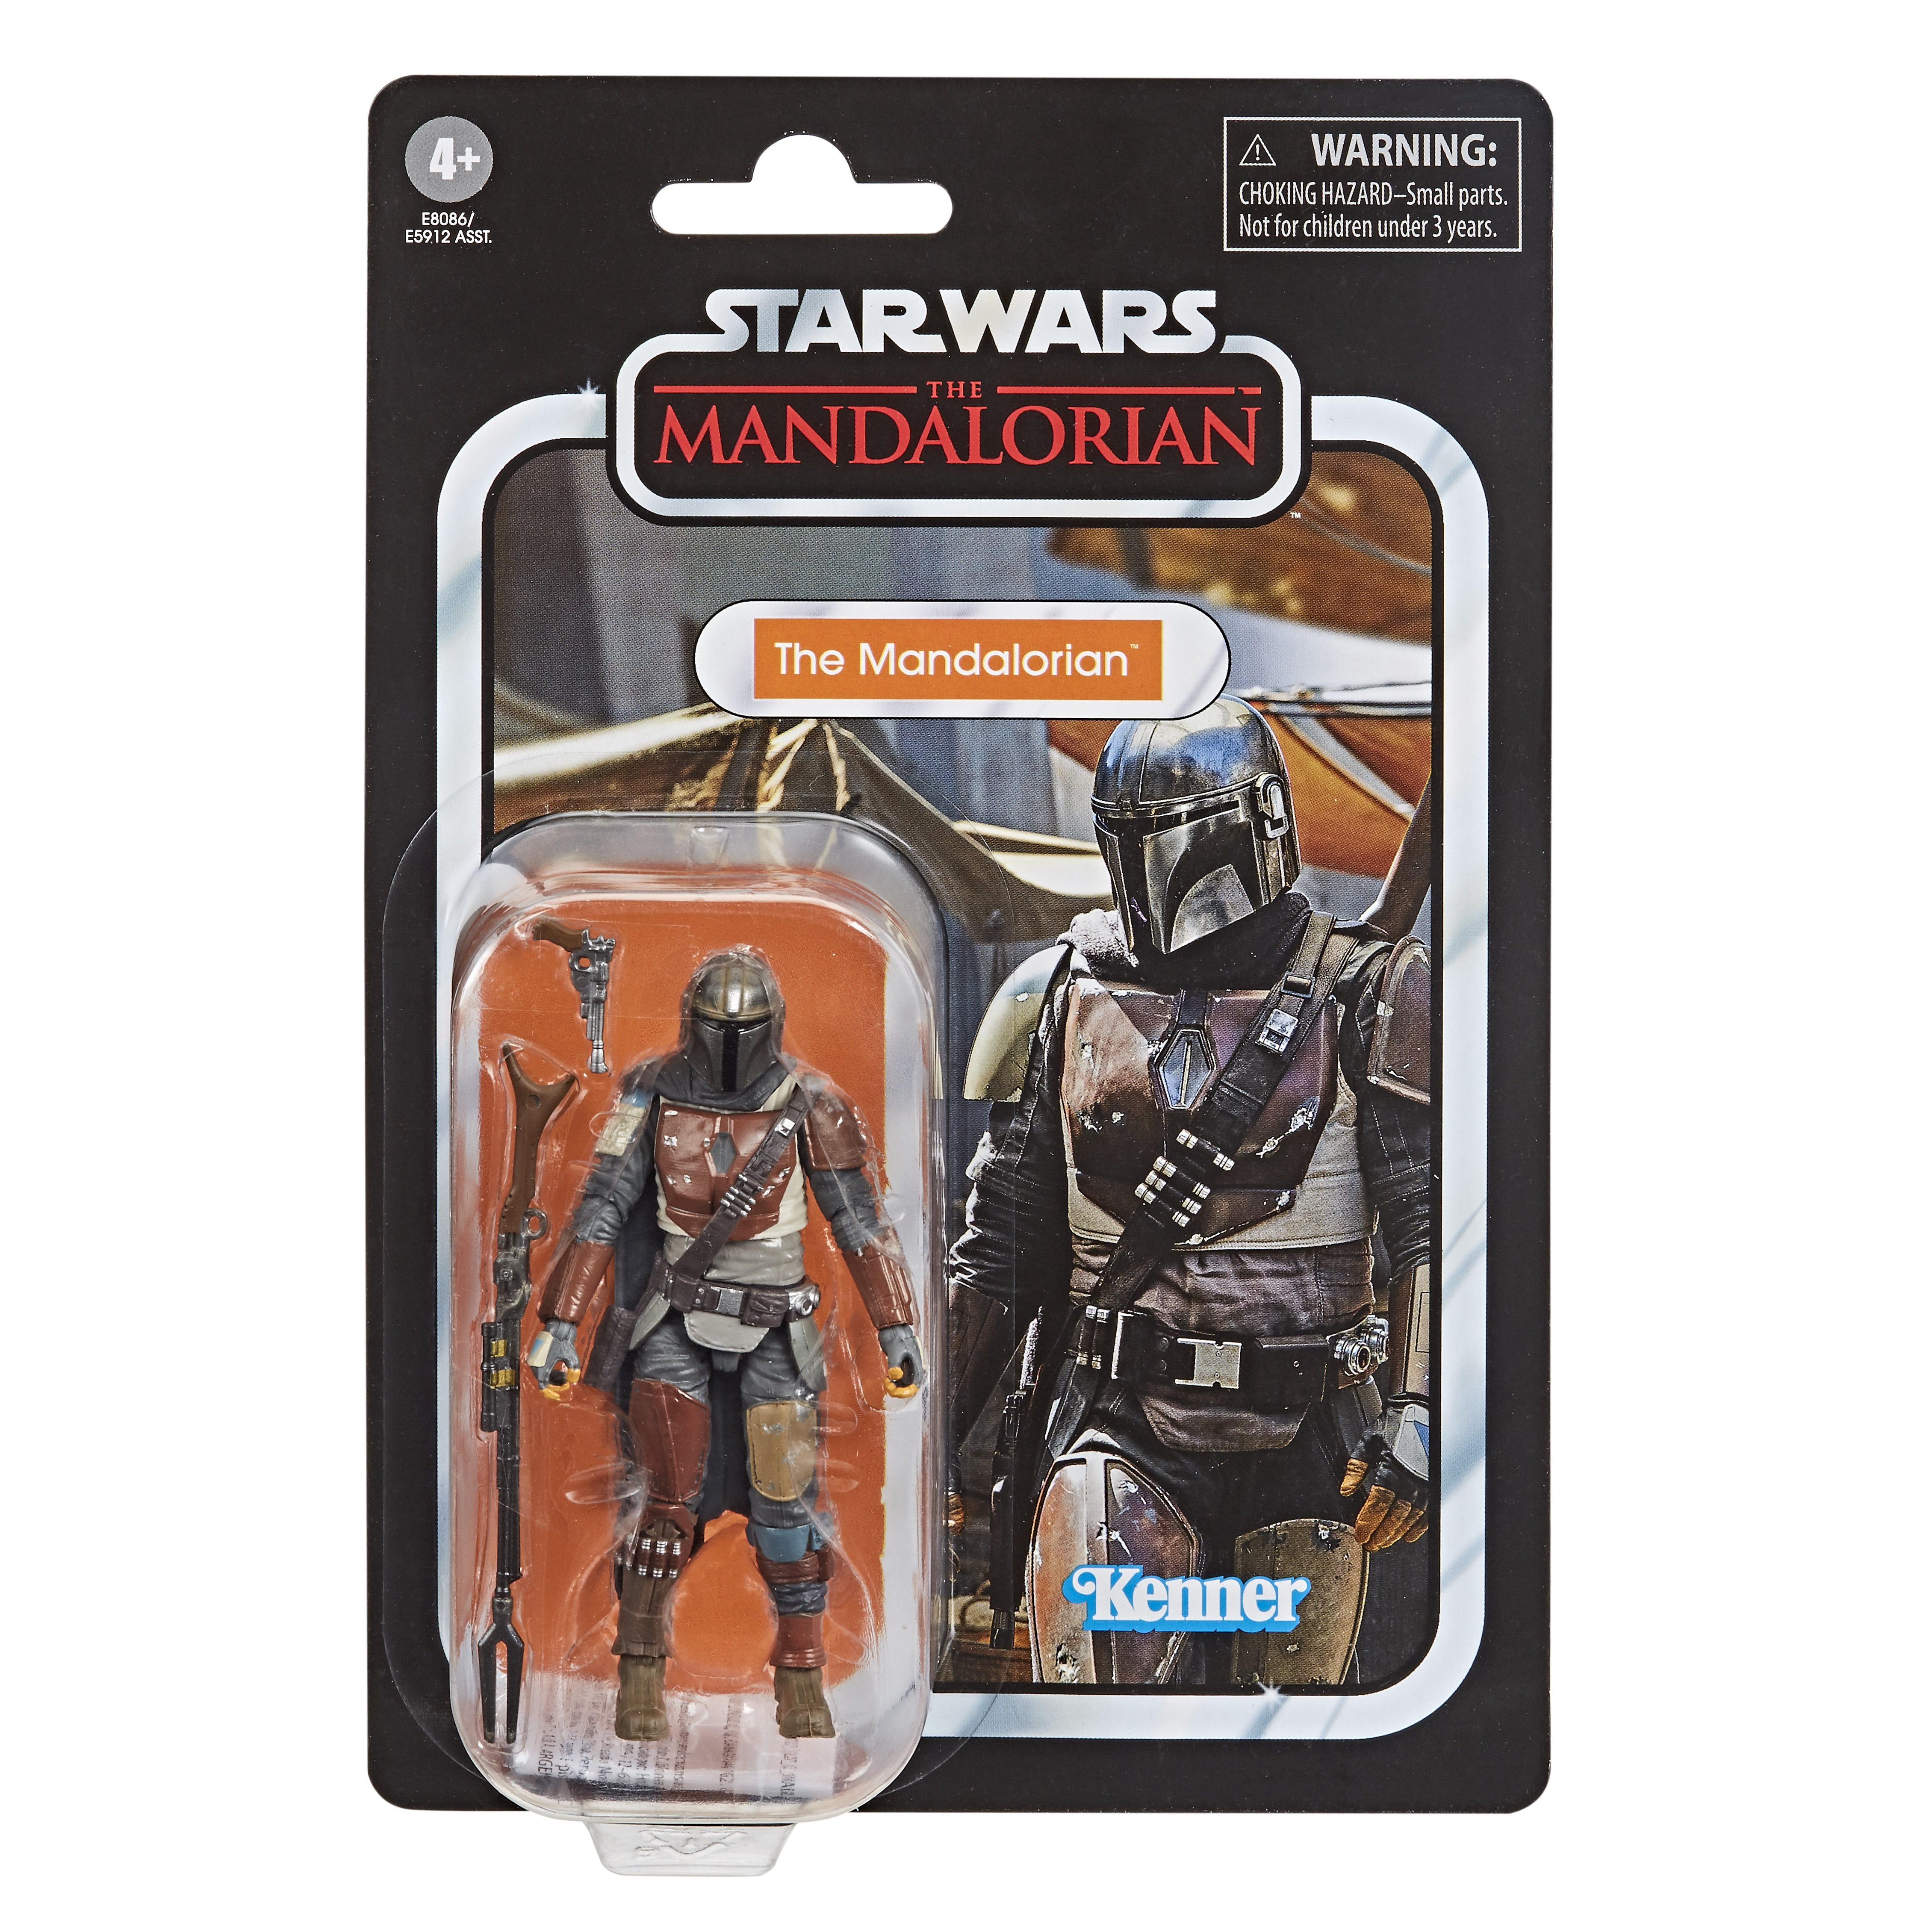 Star Wars The Vintage Collection The Mandalorian Toy Action Figure E8086ES00  5010993694372